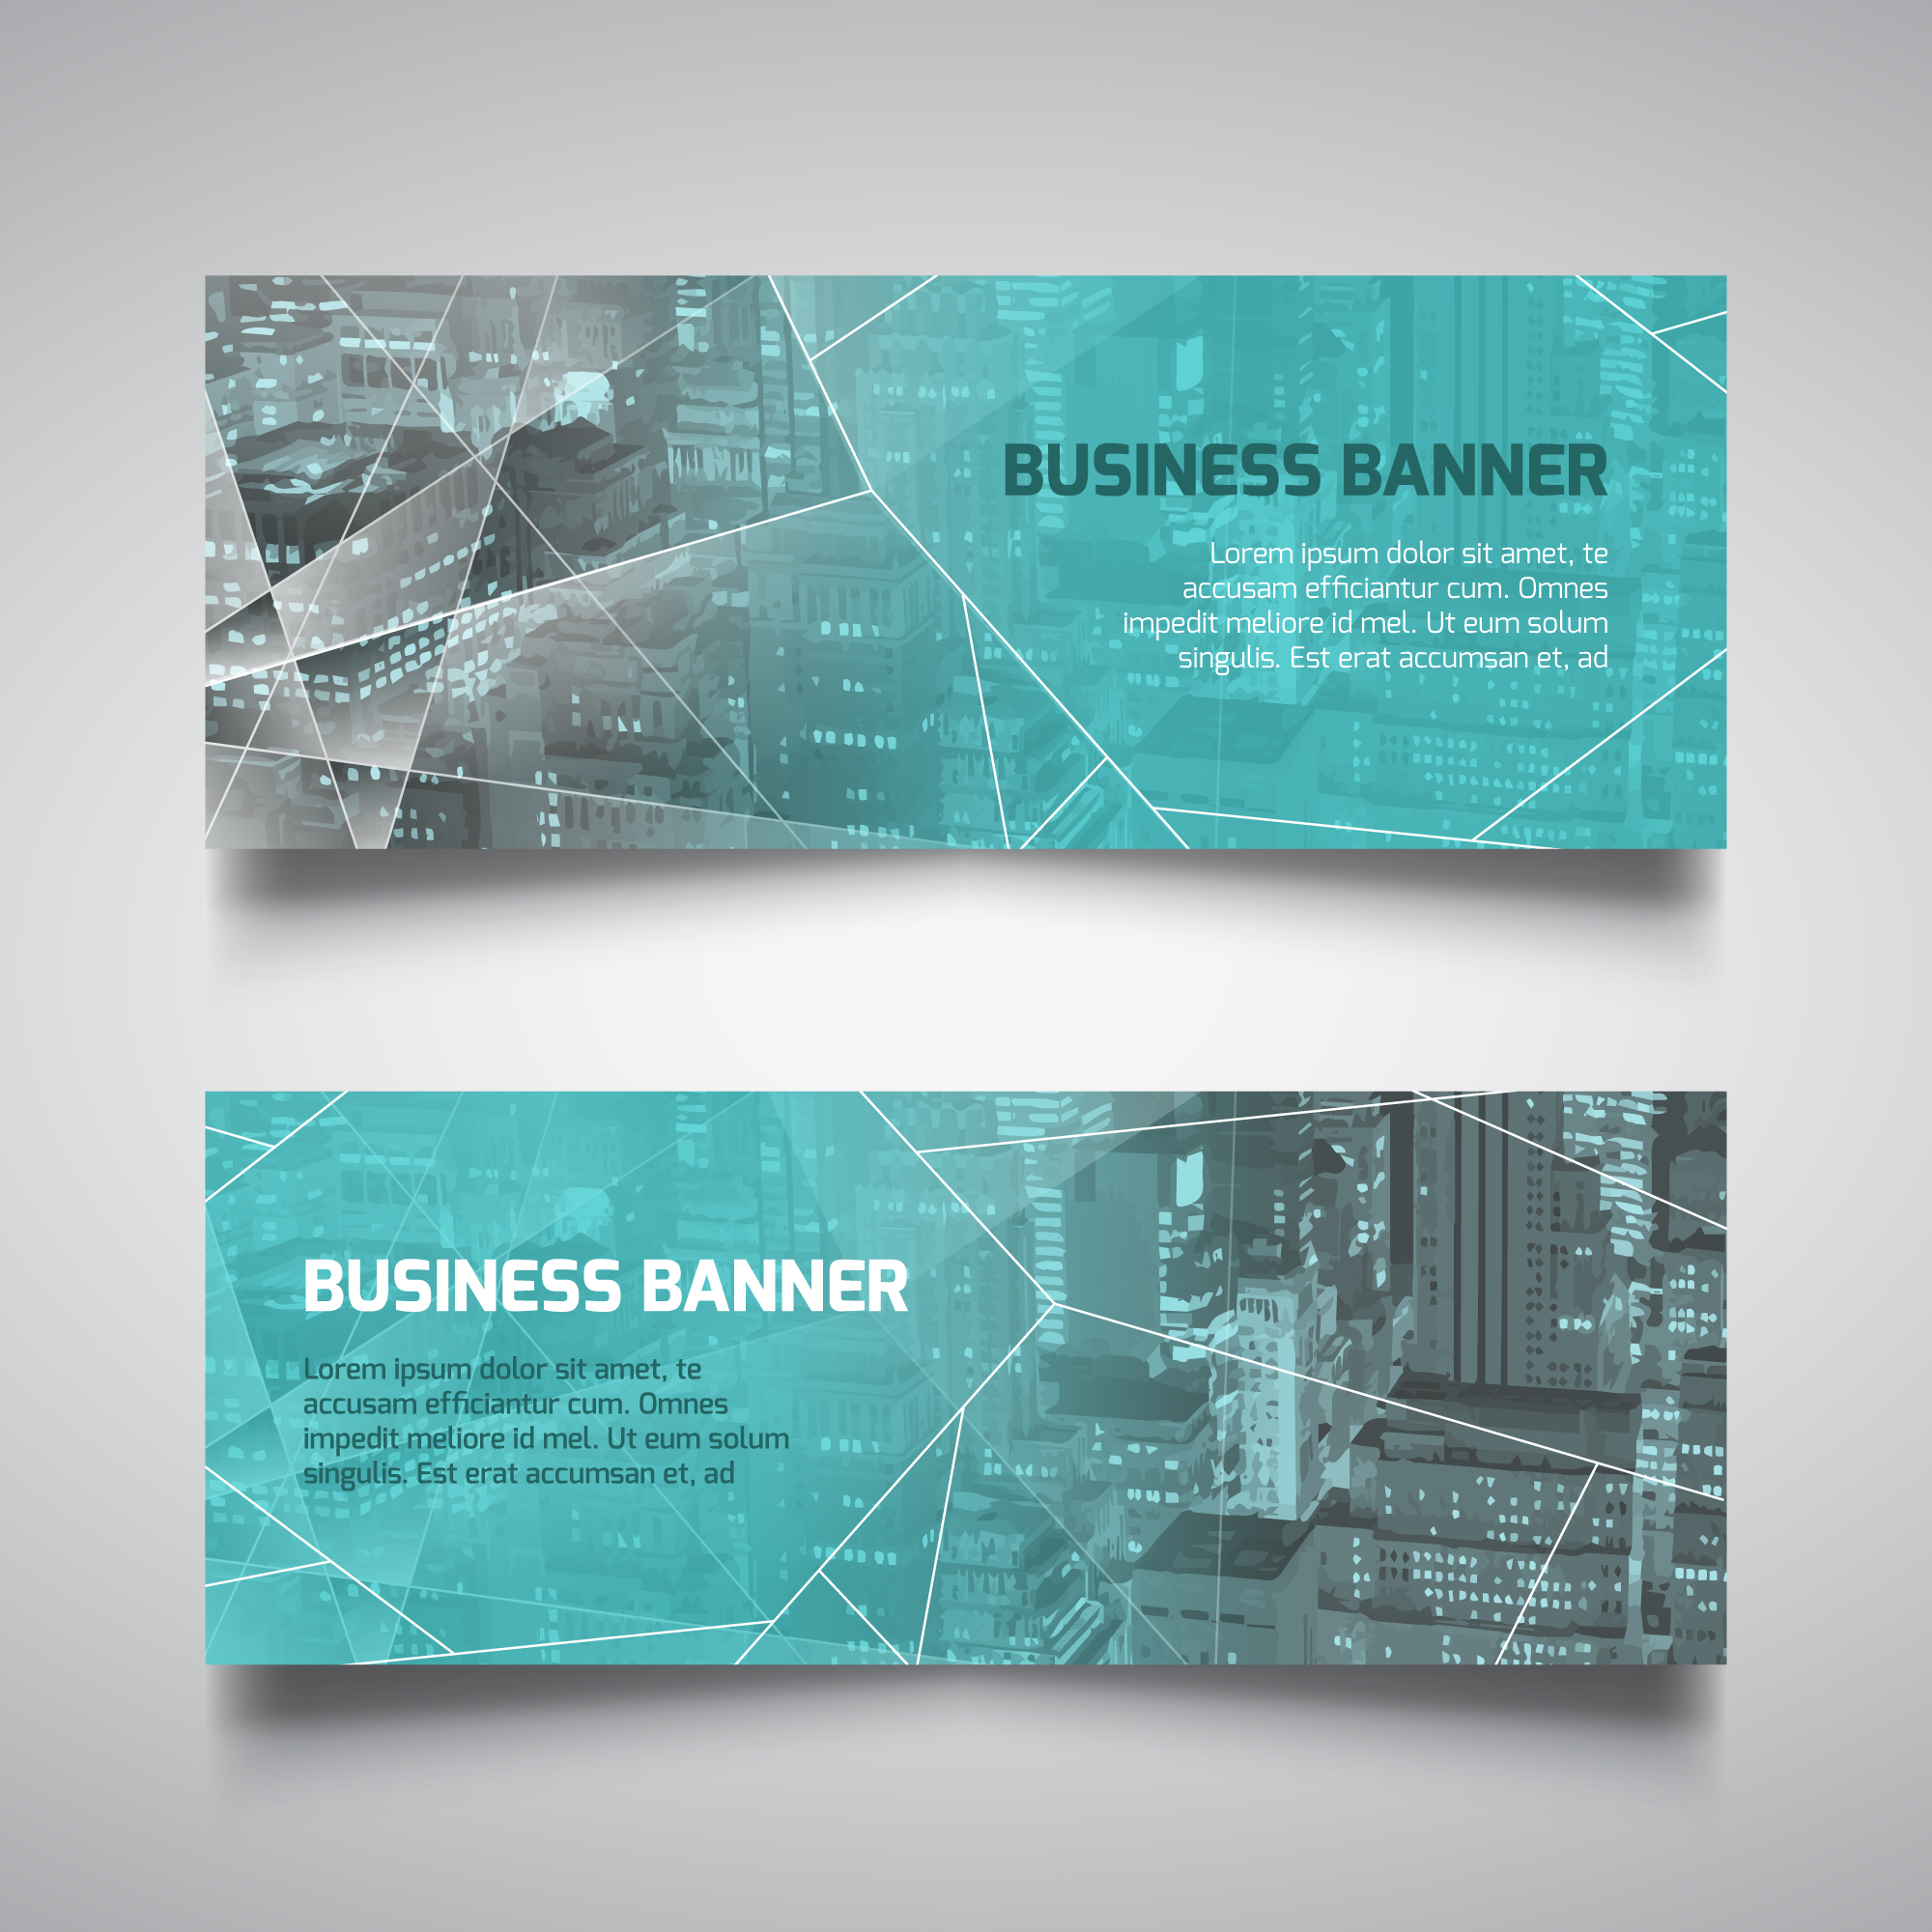 Technology style banners for business